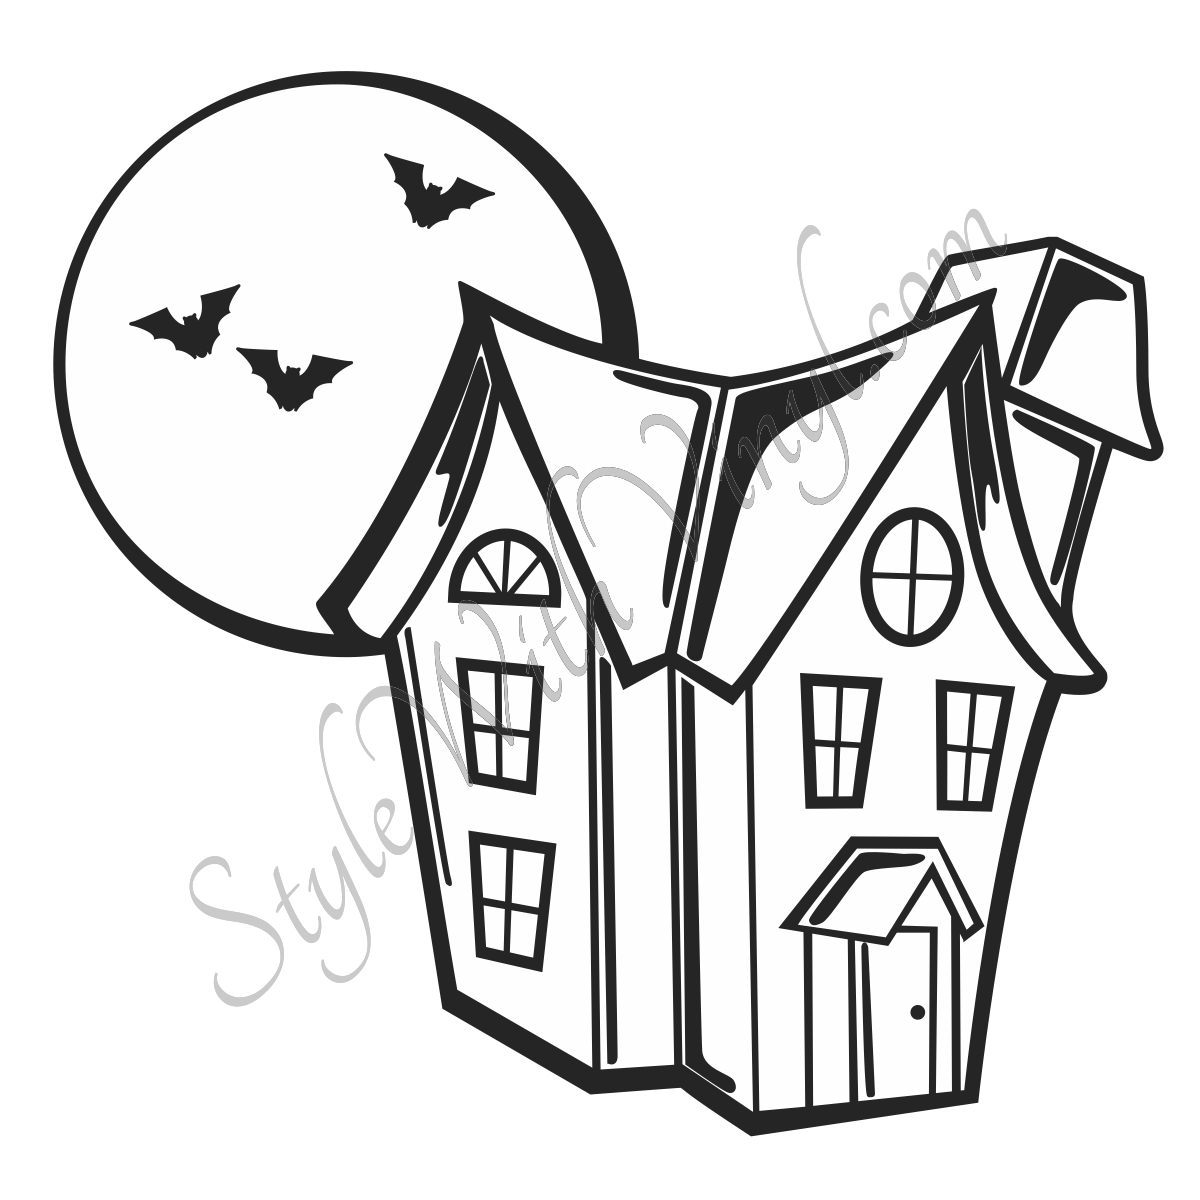 Simple Haunted House Coloring Page Haunted house drawing